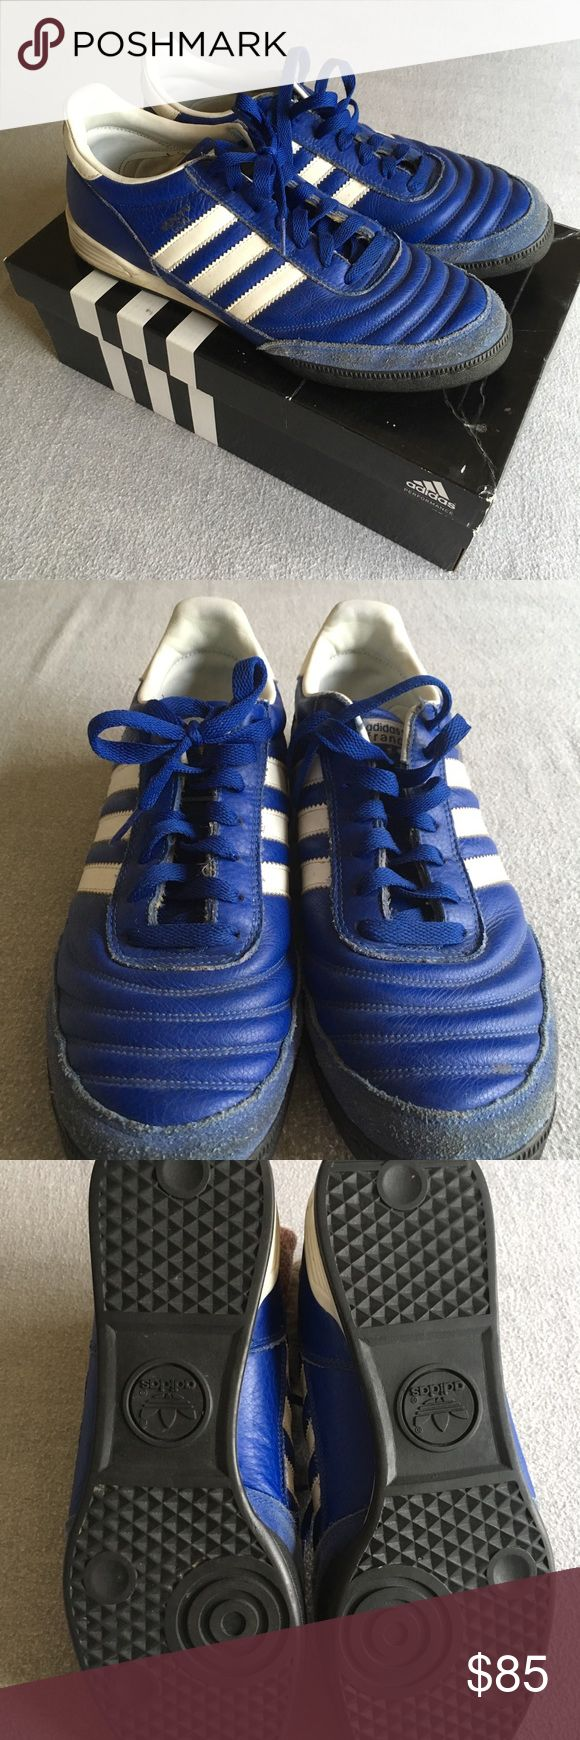 Adidas Mundial Goal France World Cup men's 10 Pre-owned European market France World Cup Mundial Goal's. Size 10, little wear, see pictures. I wear a 10.5 so I only wore them a handful of times. They might be 20 years old. Vintage bad ass Adidas indoor soccer shoes. A must have for your closet!! adidas Shoes Sneakers